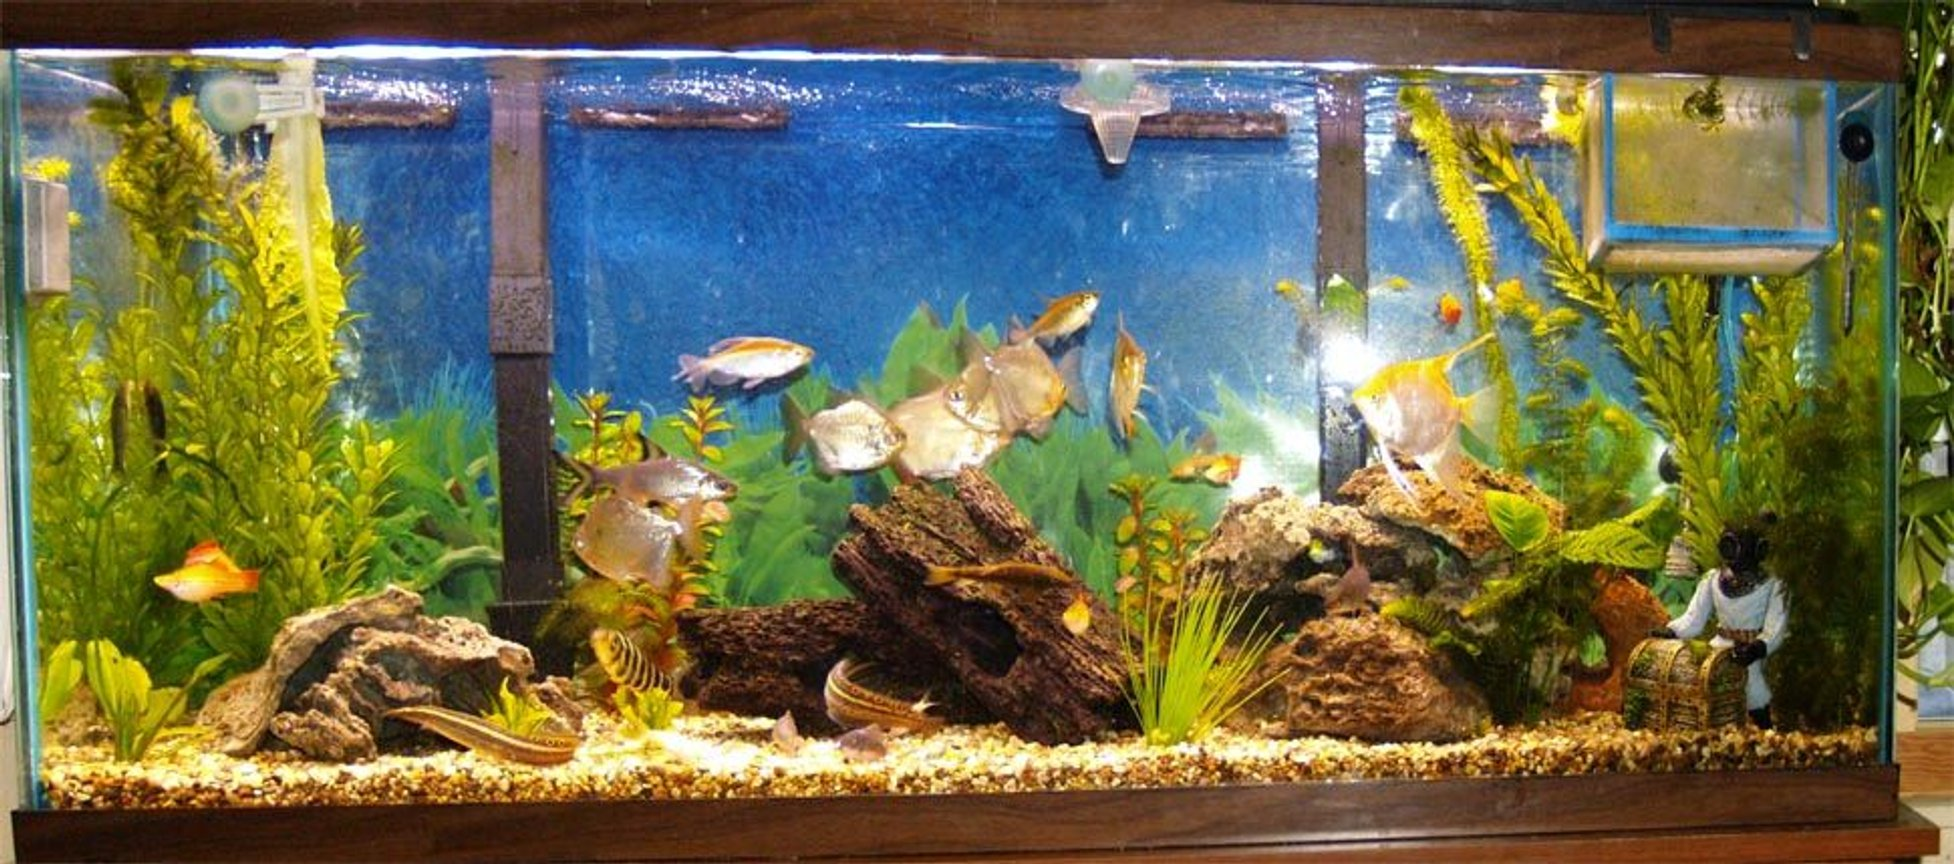 55 gallons freshwater fish tank (mostly fish and non-living decorations) - My 8 month old fresh water 55gal tank